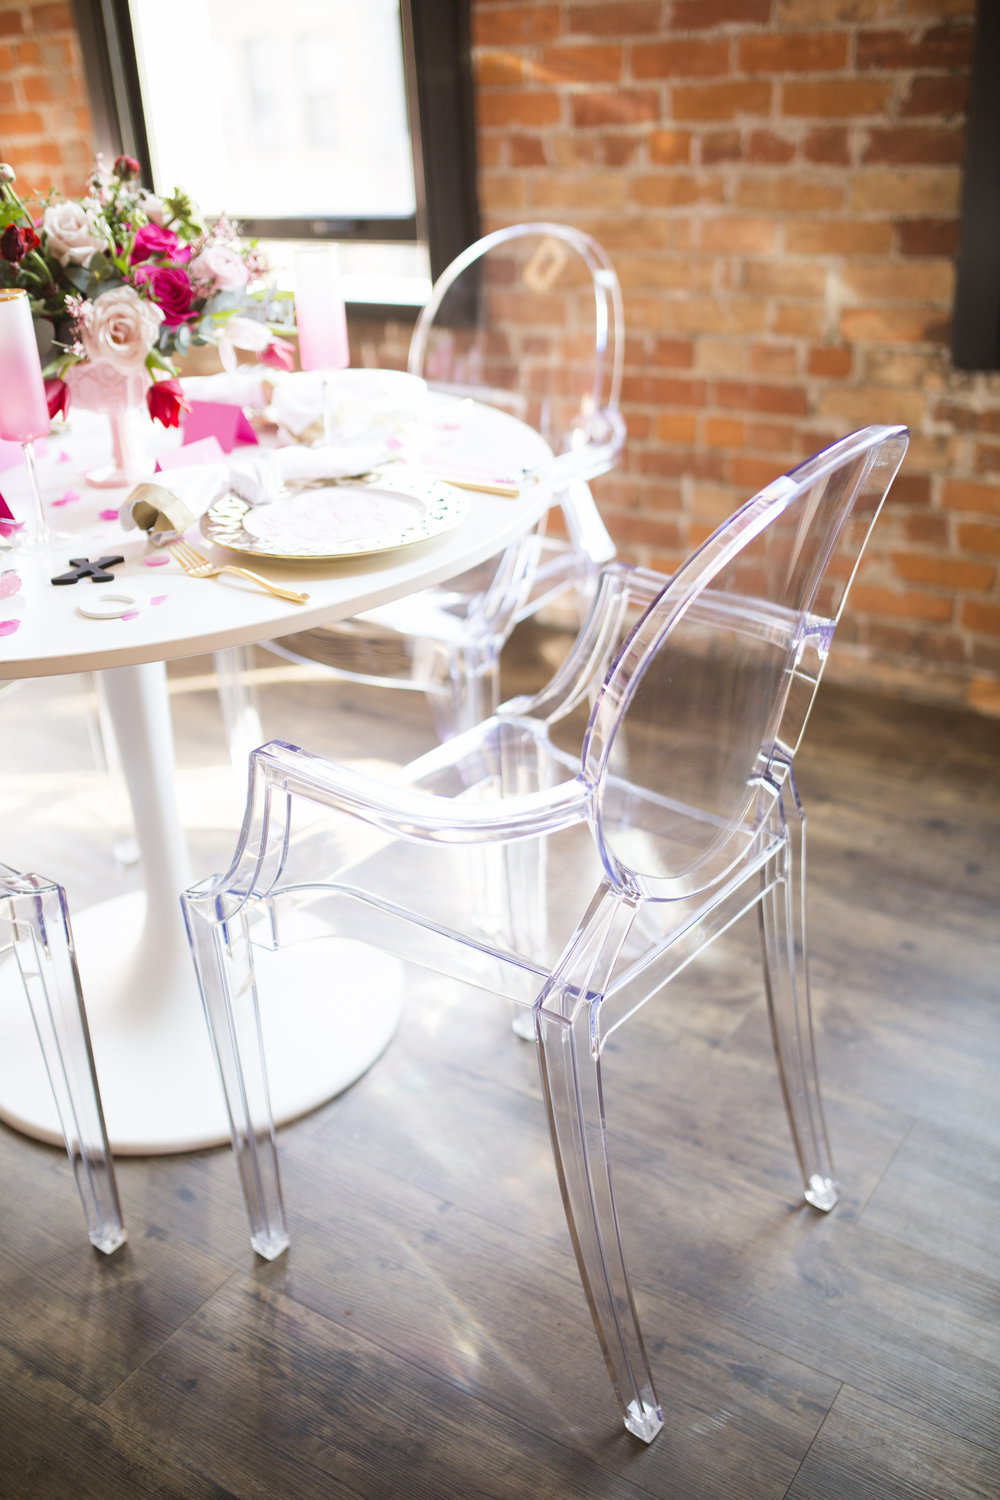 Ghost chairs are my go-to choice when trying to add a modern touch to any event!